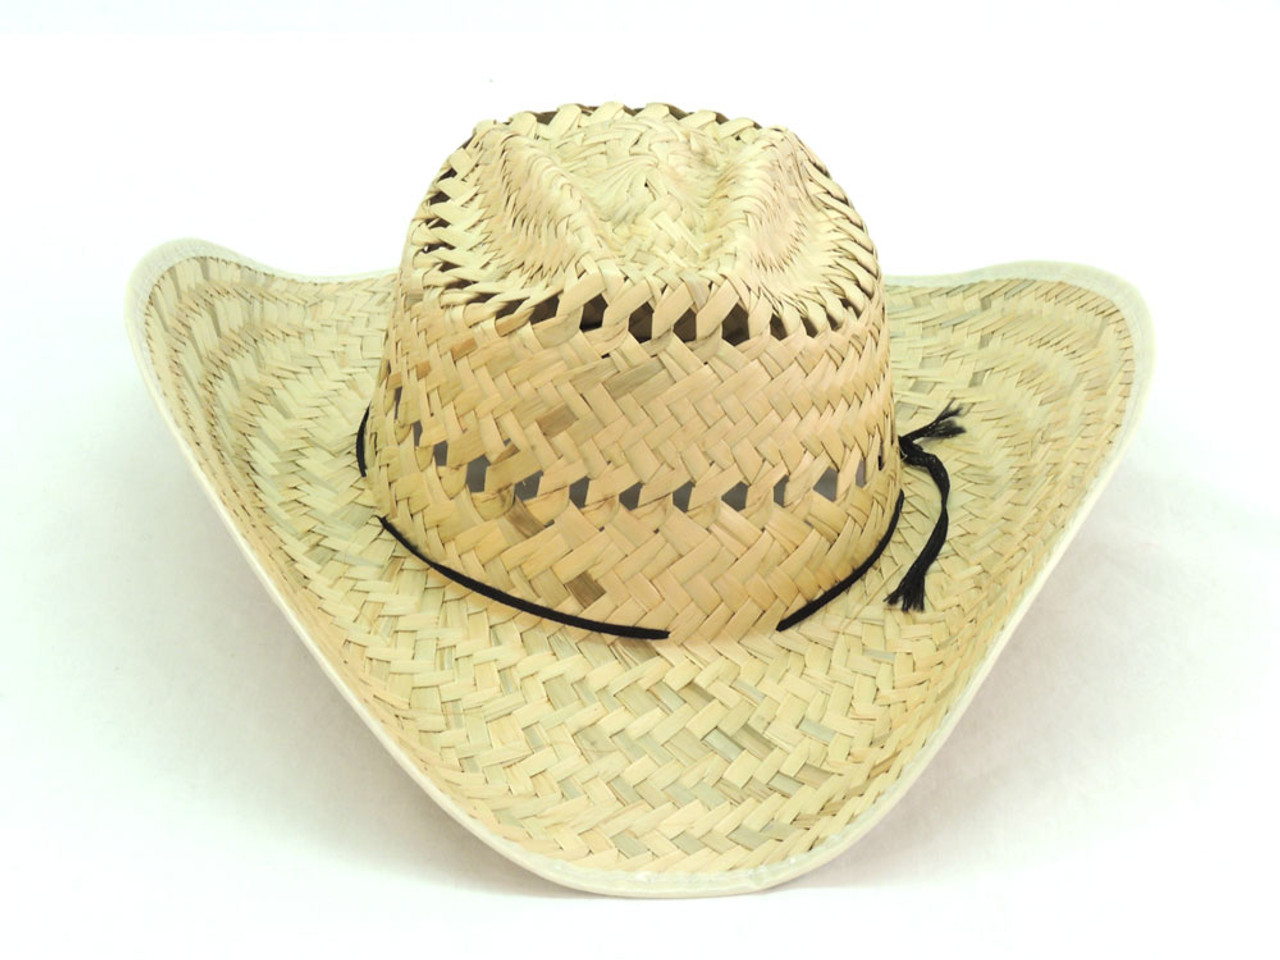 03a2e48c248b8 Raffia Palm Straw Hat with Roped Band Tall Crown Adjustable ...